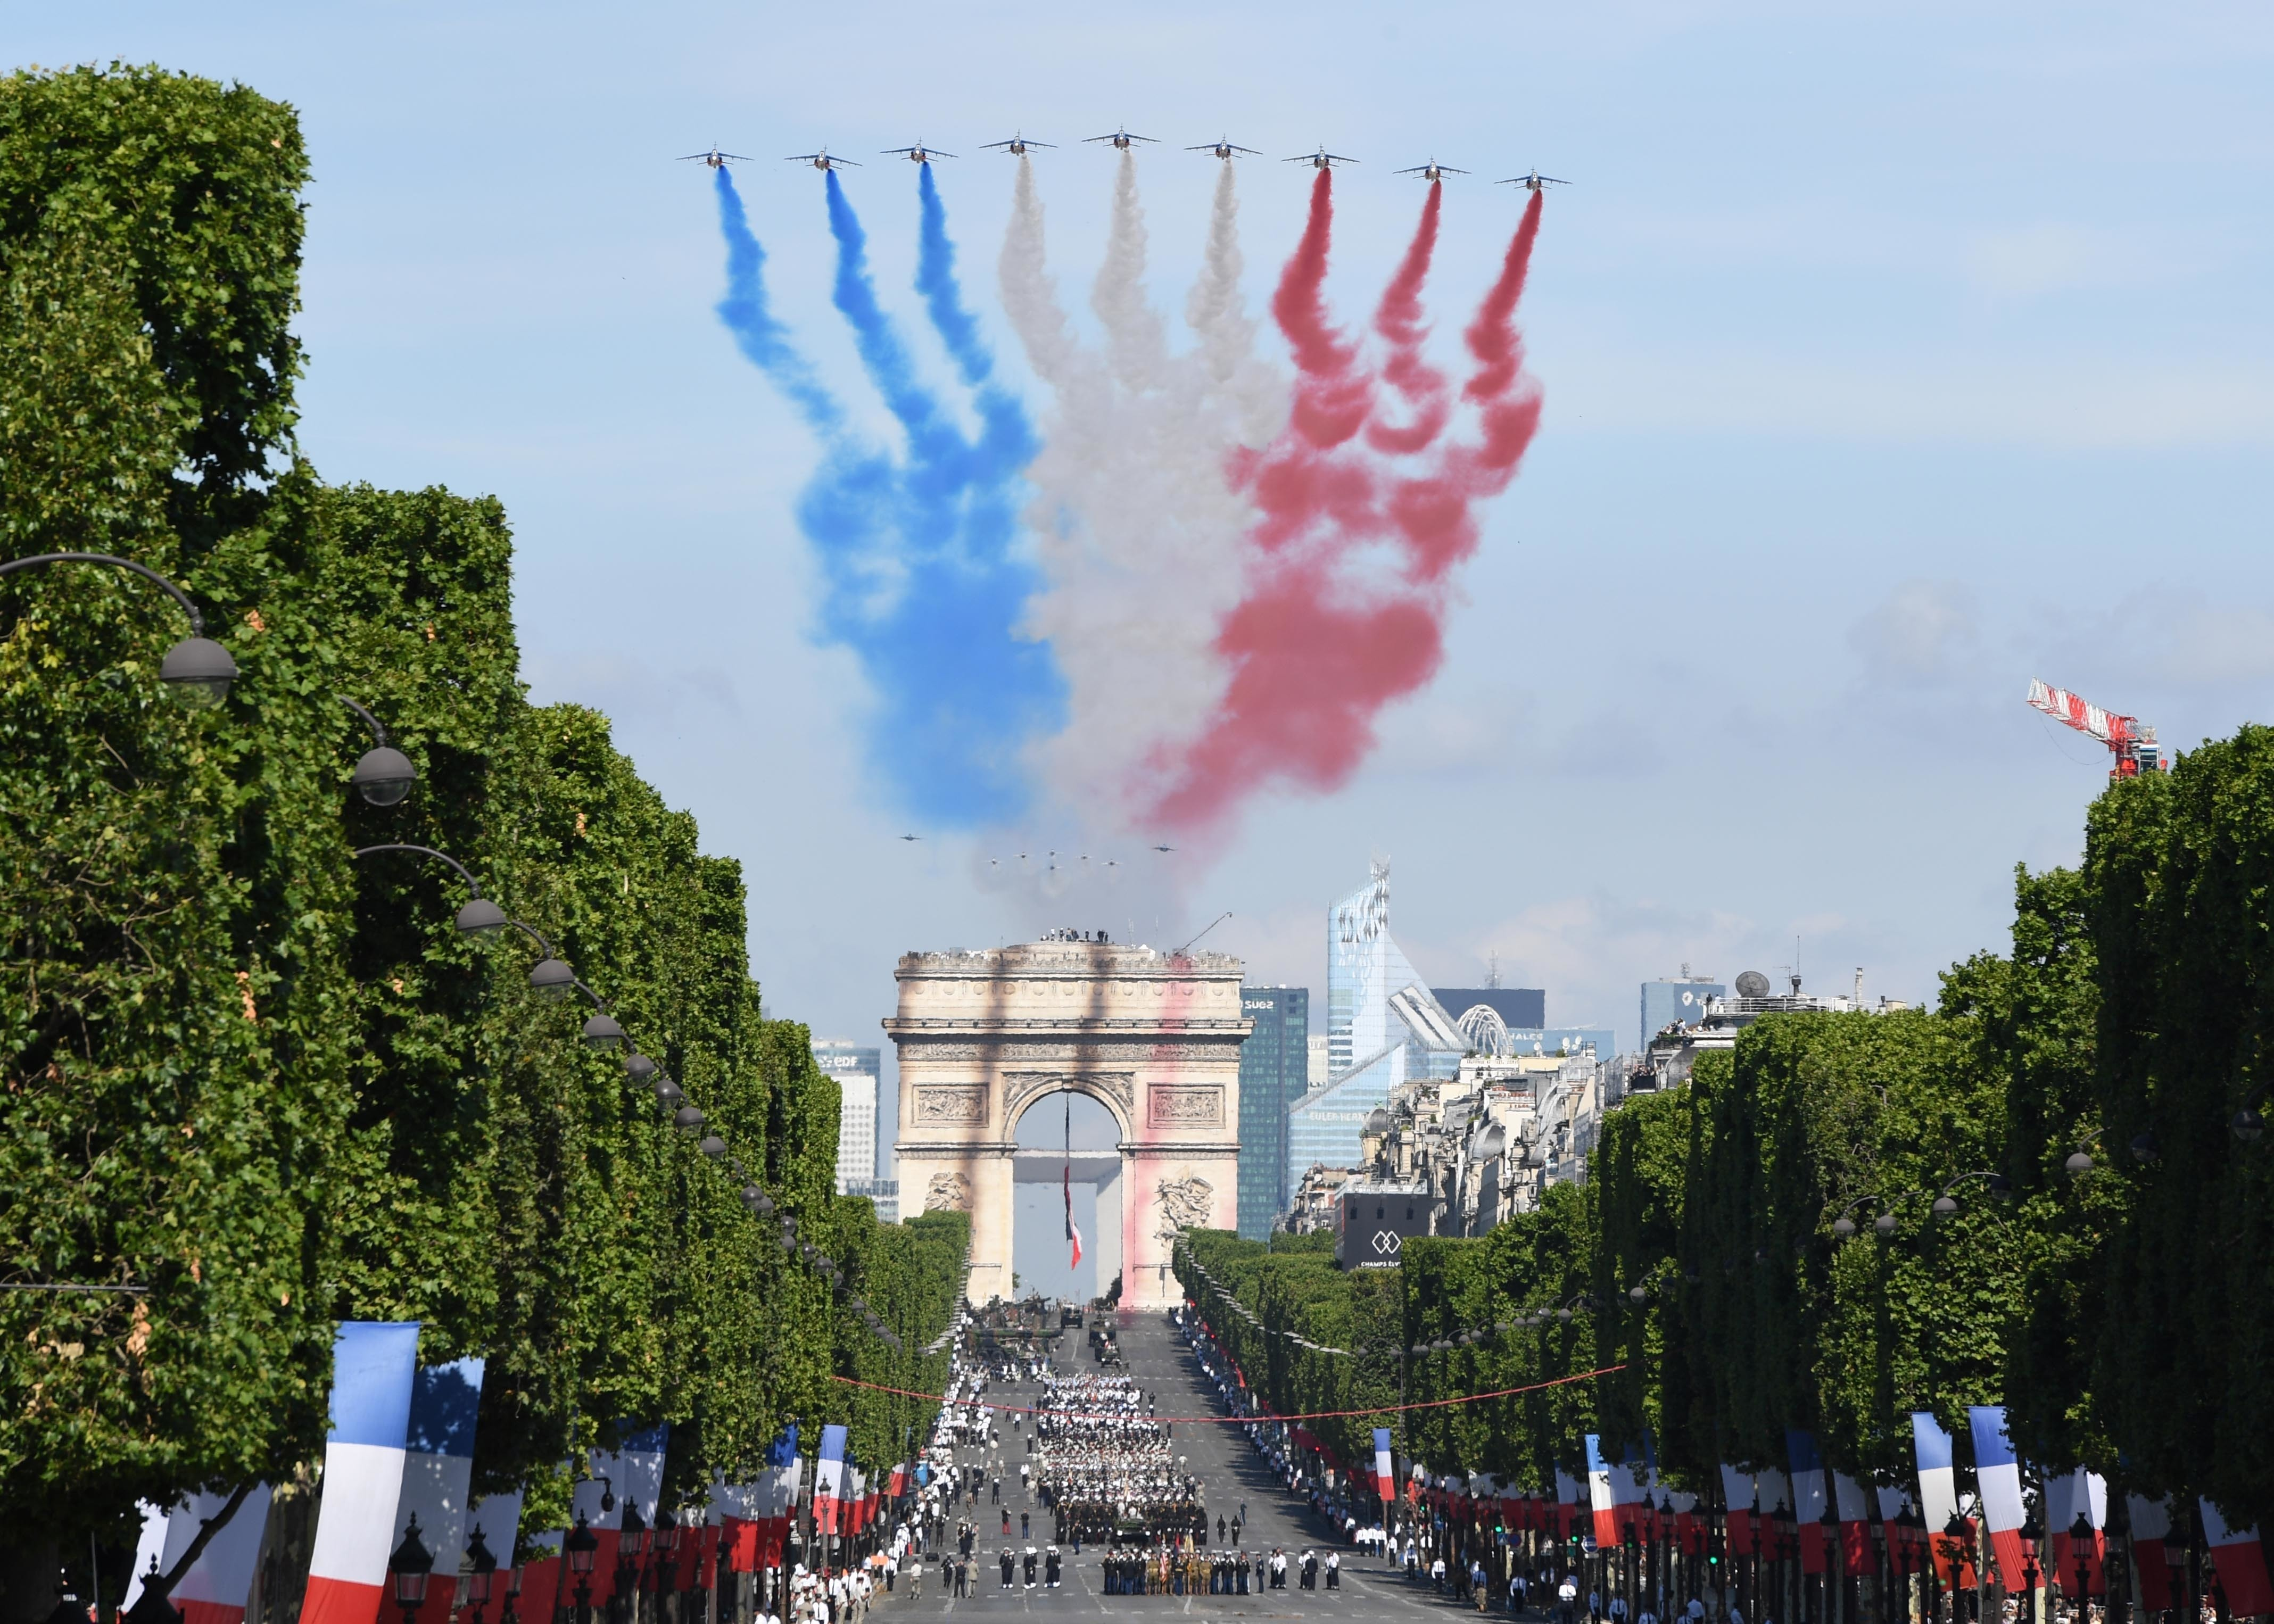 170714-N-AC979-294 PARIS (July 14, 2017) French Alphajets, followed by the U.S. Air Force Thunderbirds and two F-22 Raptors, conduct a flyover while displaying blue, white and red contrails during the Military Parade on Bastille Day. An historic first, the U.S. led the parade as the country of honor this year in commemoration of the centennial of U.S. entry into World War I and the long-standing partnership between France and the U.S. (U.S. Navy photo by Chief Mass Communication Specialist Michael McNabb/Released)